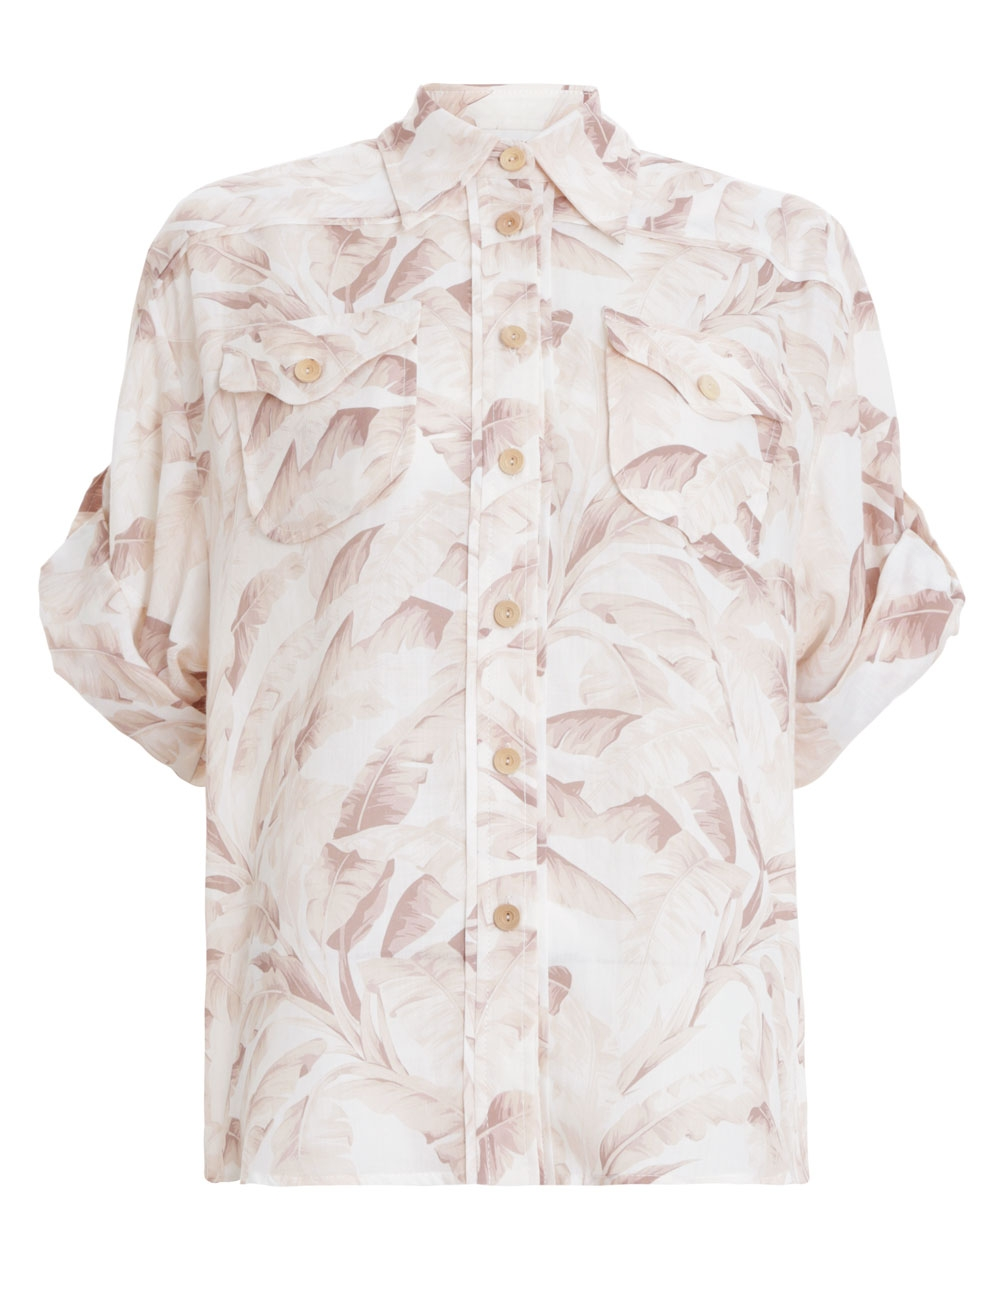 Super Eight Safari Shirt